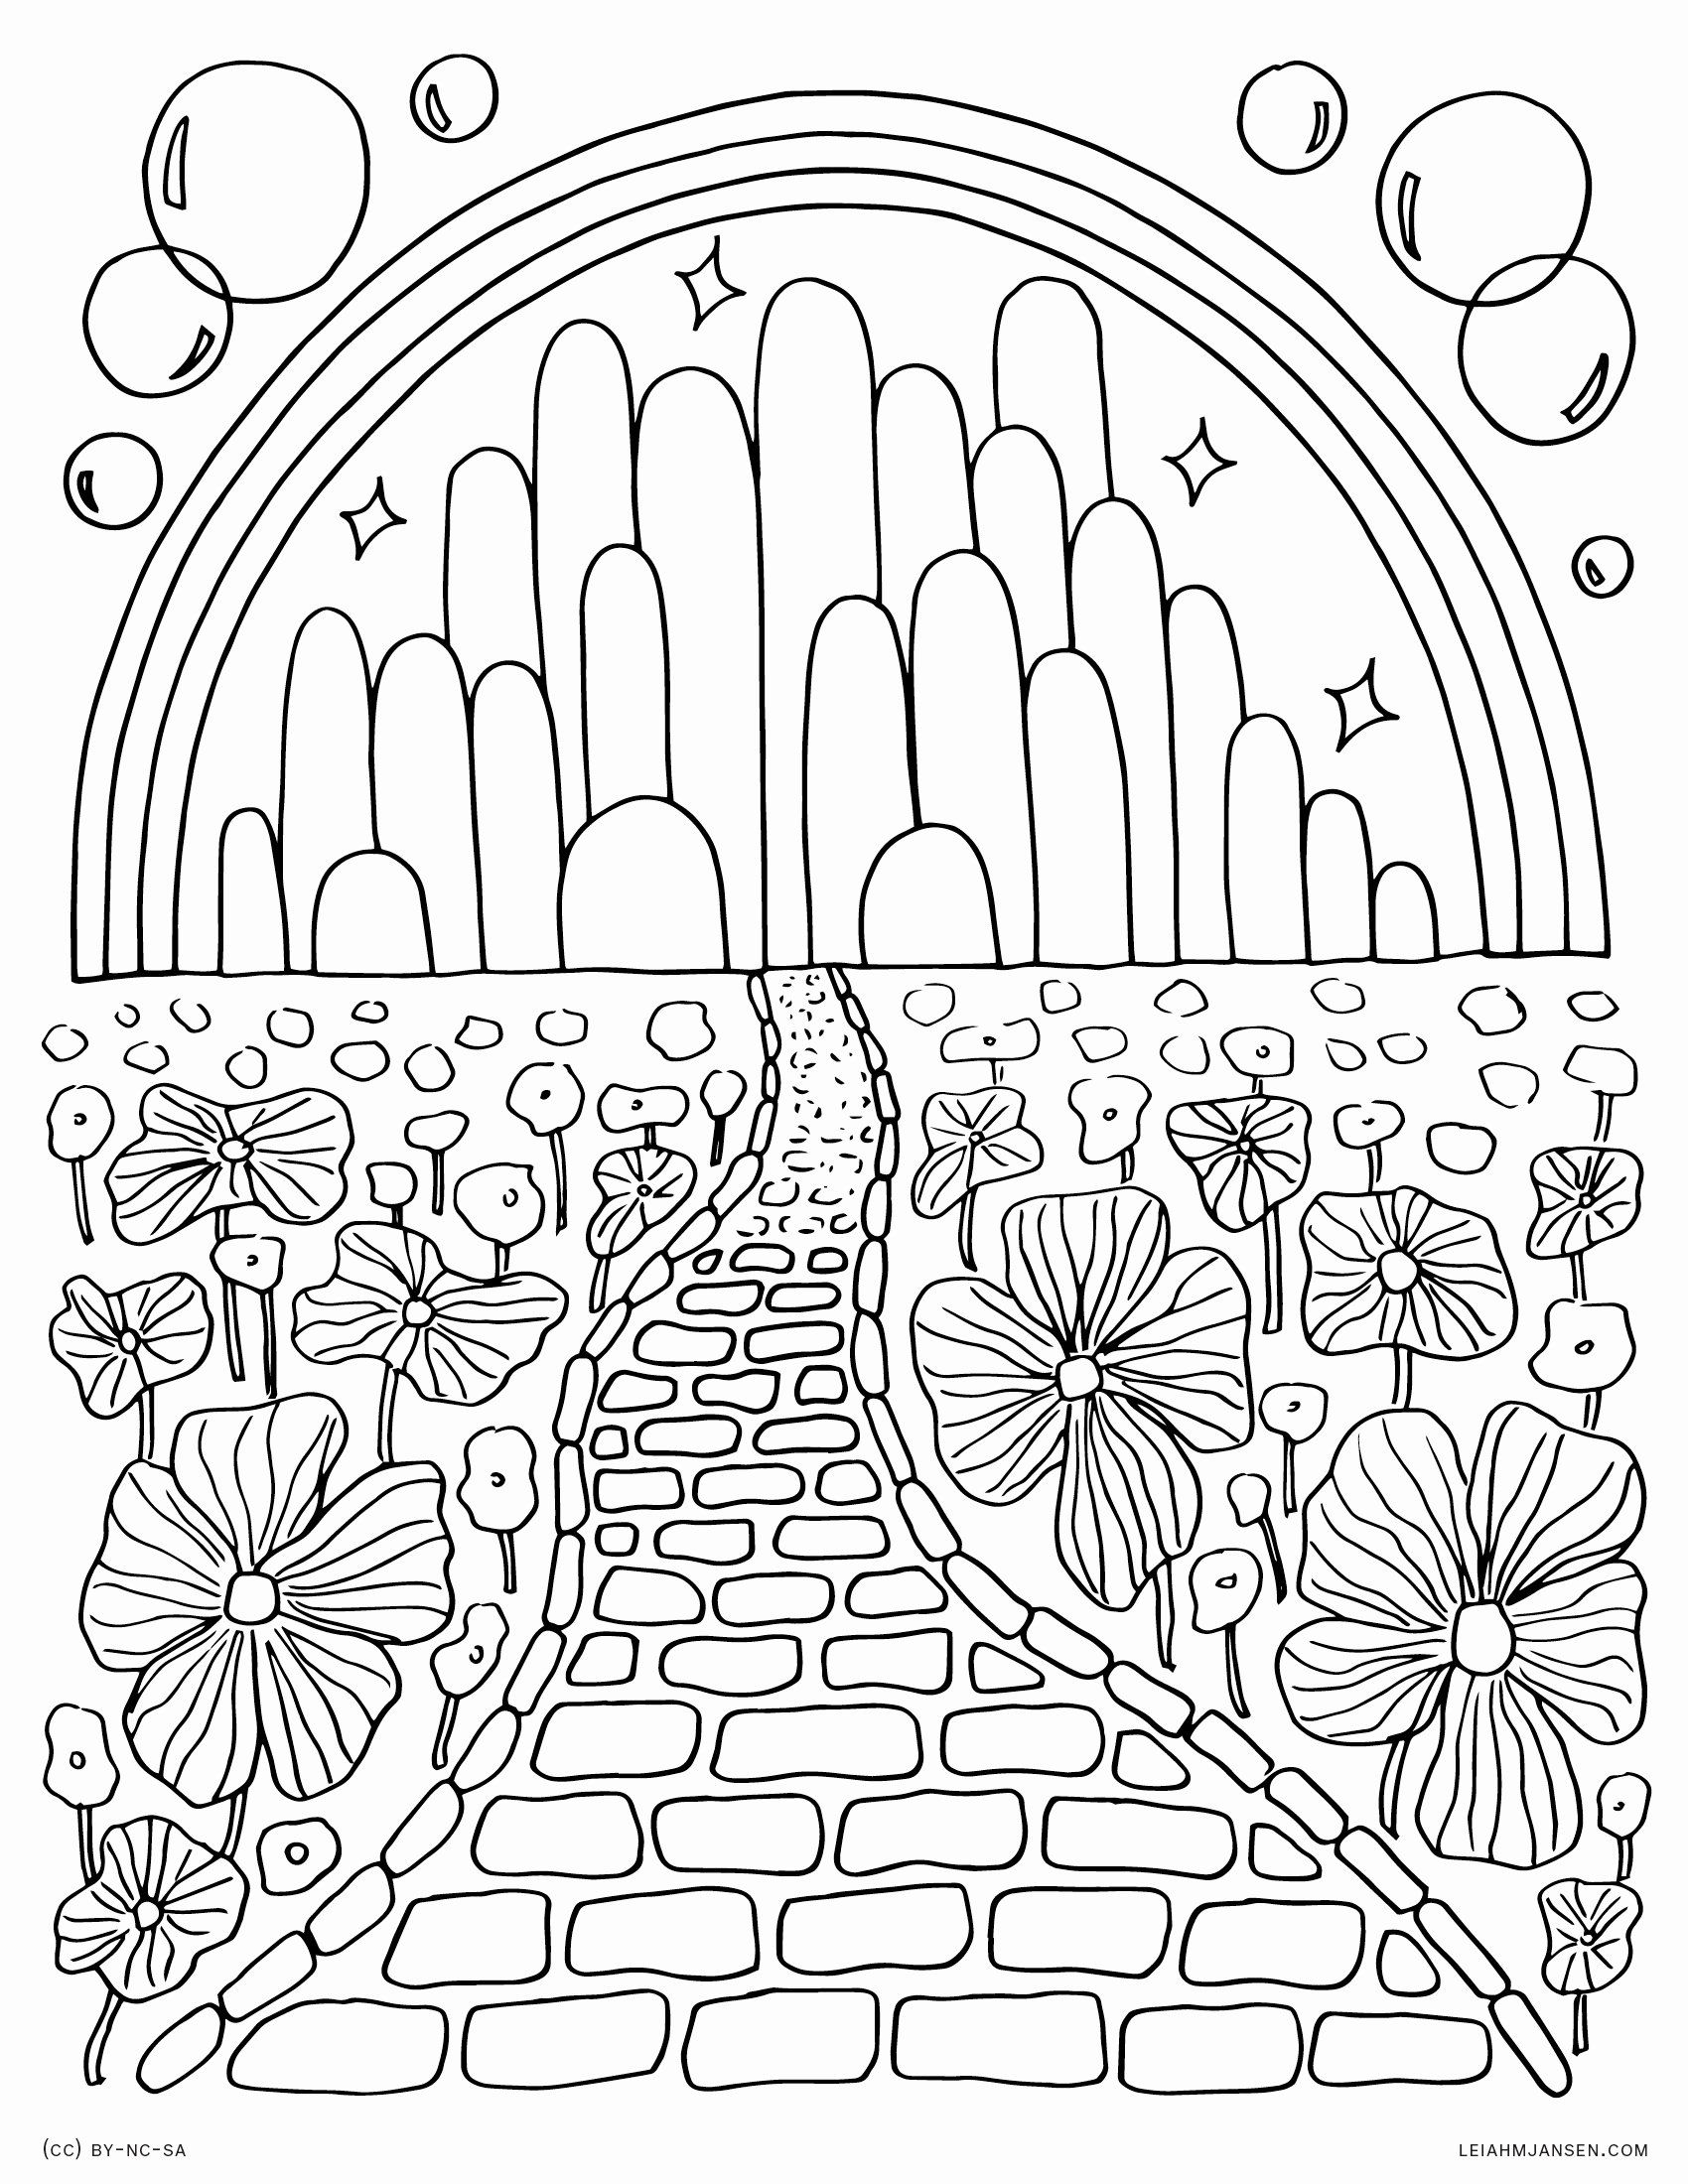 32 Wizard Of Oz Coloring Page In